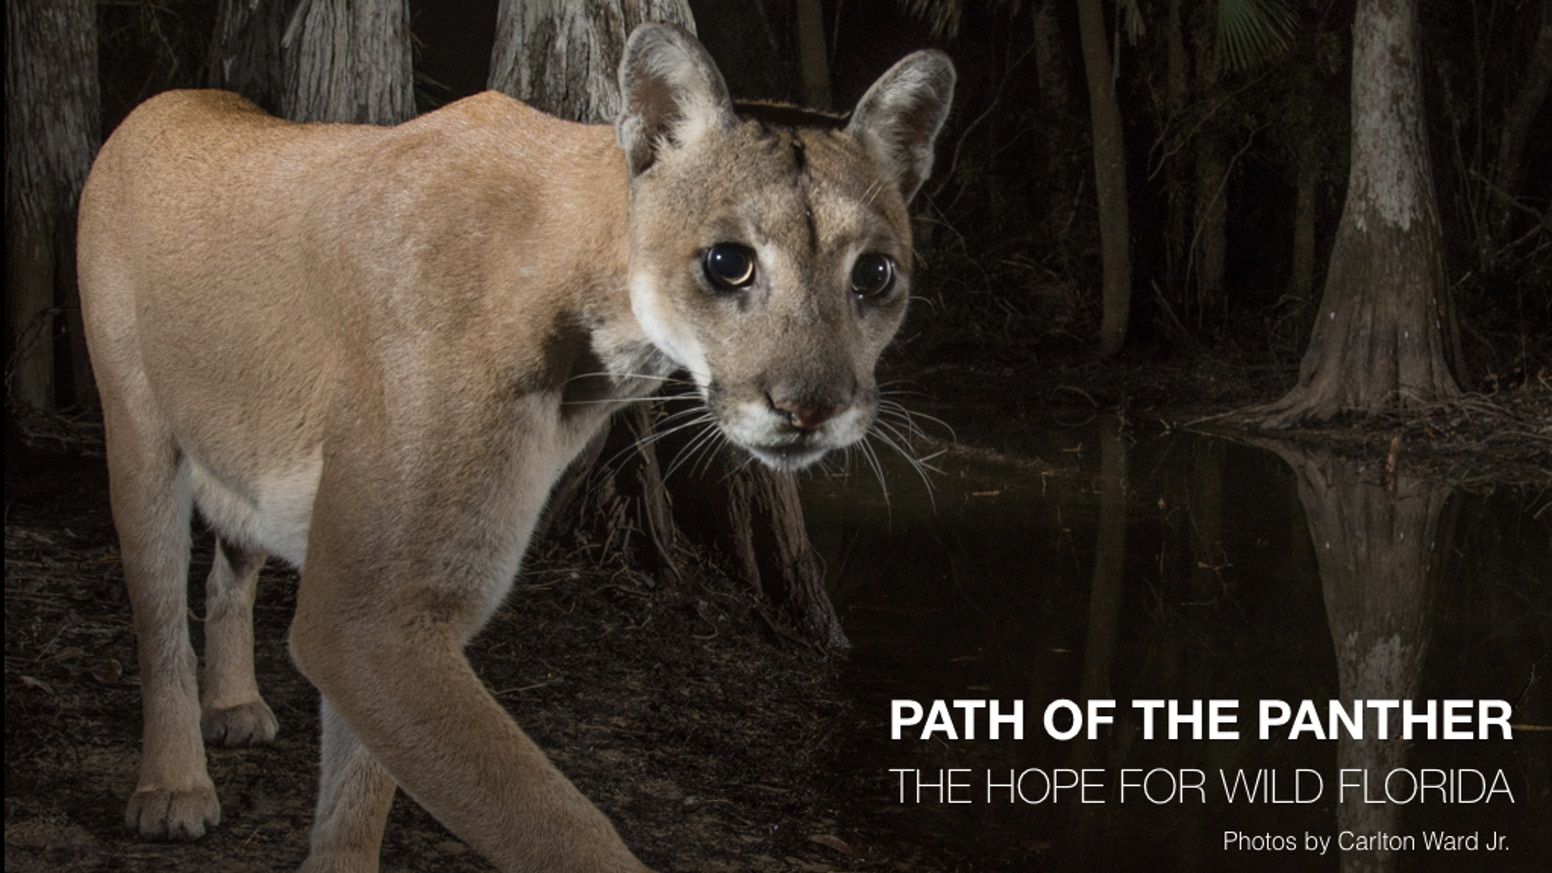 Revealing the story of the Florida panther to help save the Florida Wildlife Corridor and keep the Everglades connected to the rest of America.